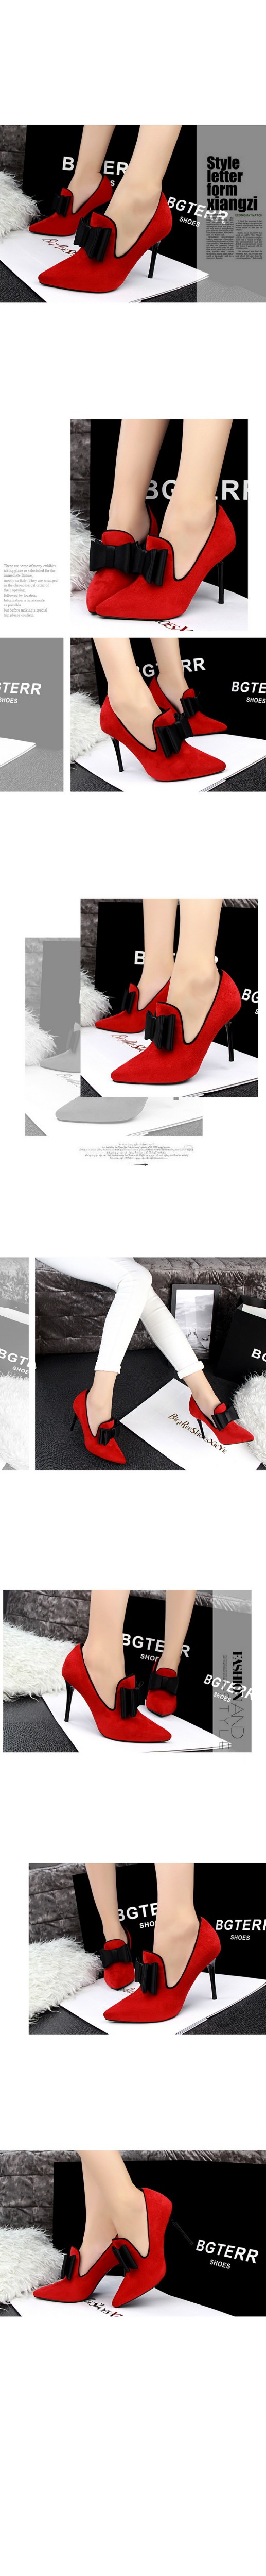 2016 New Fashion Thin High Heels Women Pumps Sweet Bowtie Pointed Toe Shoes New Arrival Women Shoes Zapatos Mujer ZM2.5